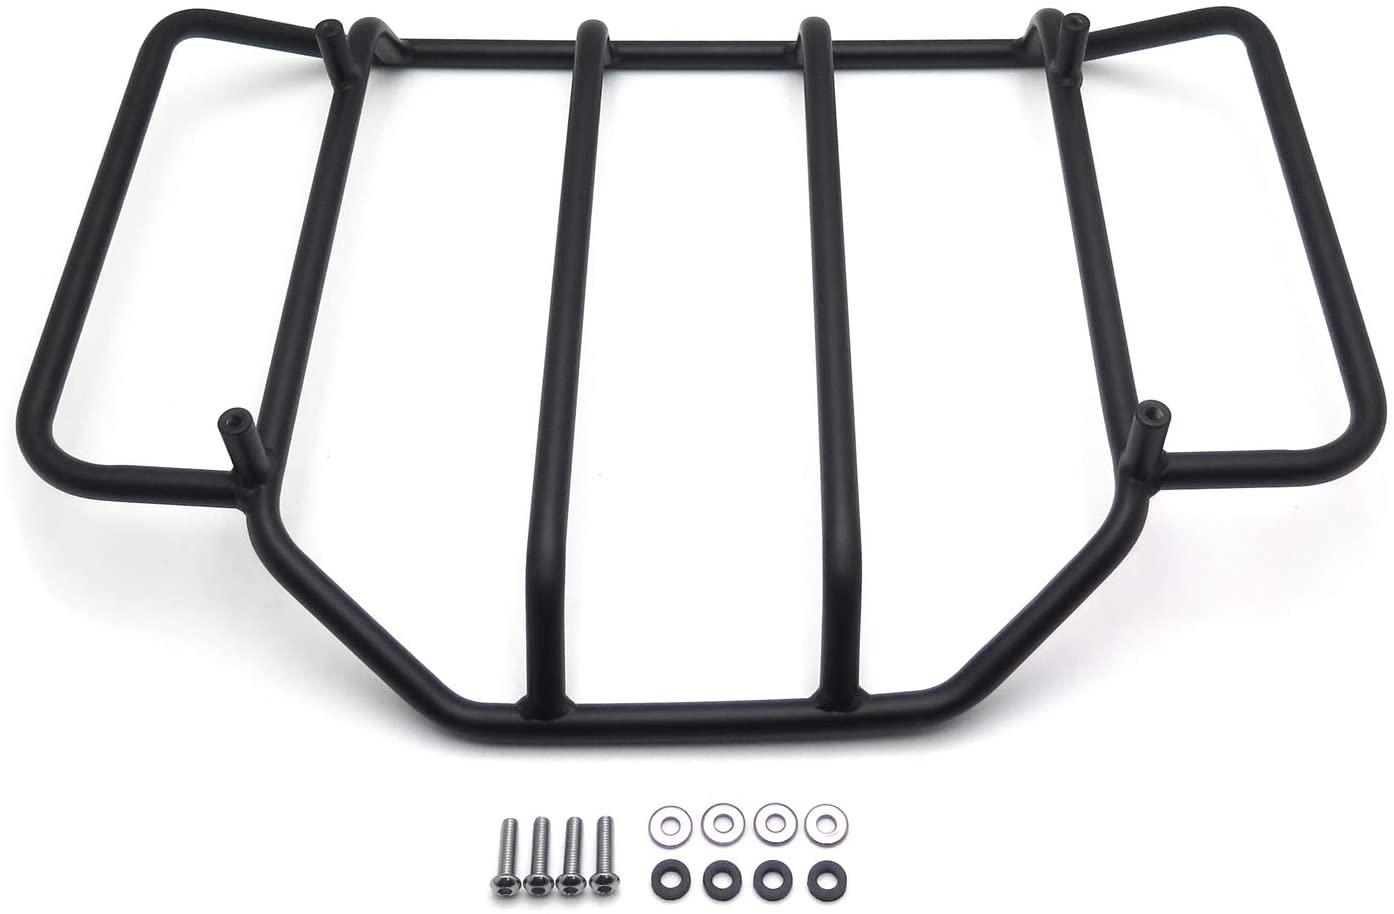 XKMT-Black Luggage Rack Rail Trunk Luggage Rack Rail Compatible With Harley Touring Road King Street Glide Road Glide Electra Glide FLHTC FLHS B01BCZKF7O